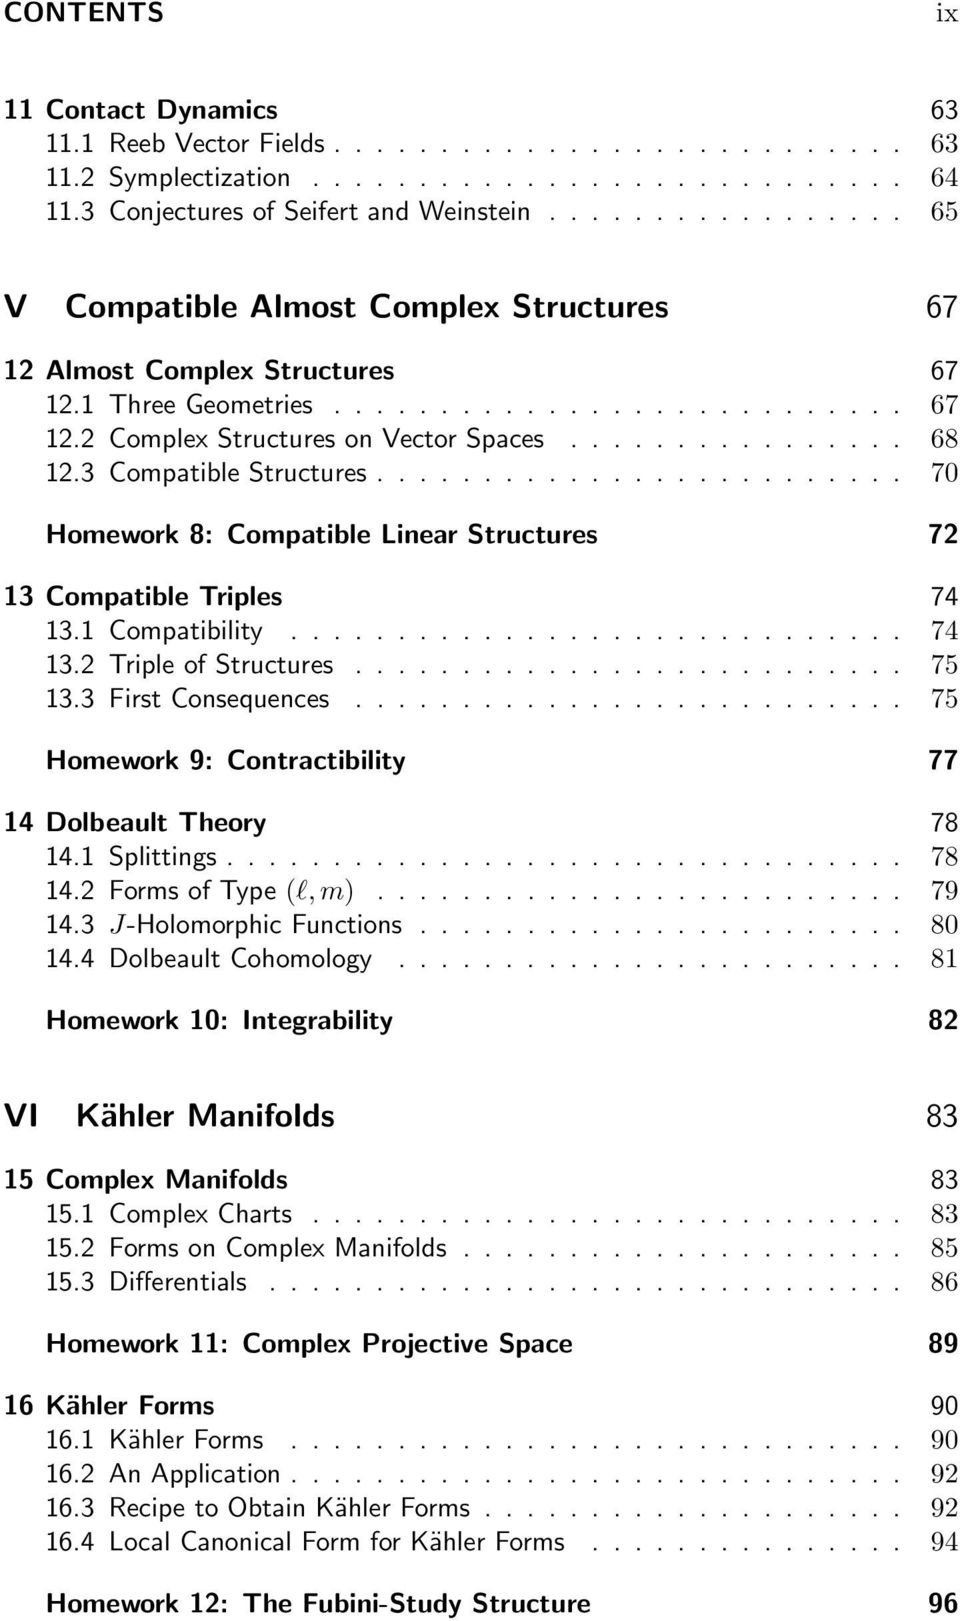 3 Compatible Structures......................... 70 Homework 8: Compatible Linear Structures 72 13 Compatible Triples 74 13.1 Compatibility............................. 74 13.2 Triple of Structures.